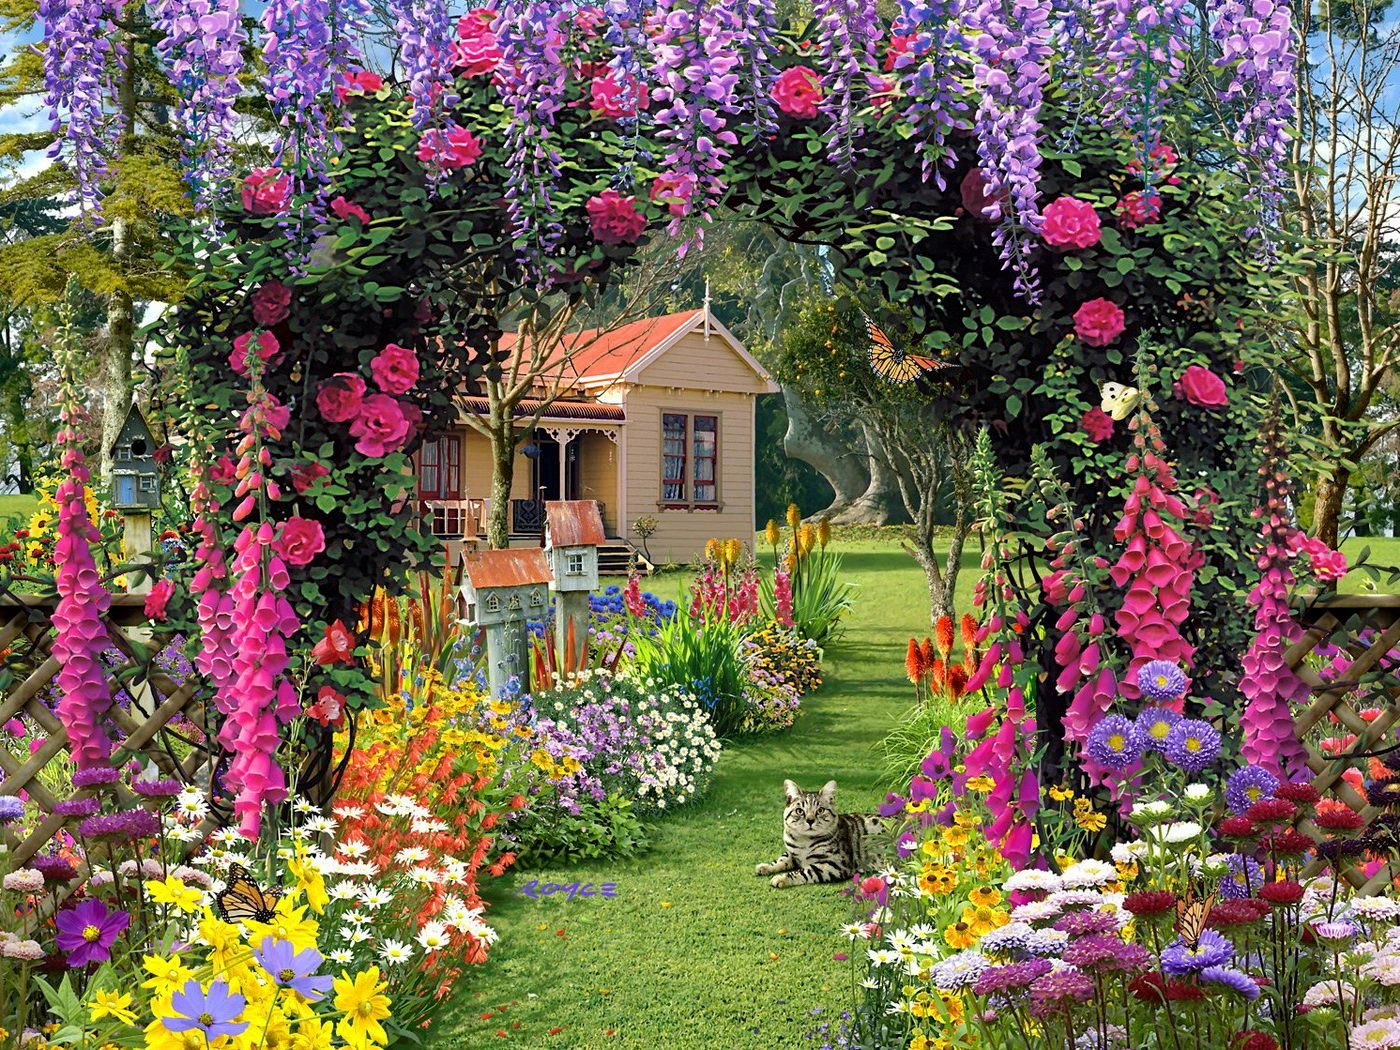 wallpapers fair luxurious flower garden hd widescreen wallpaper